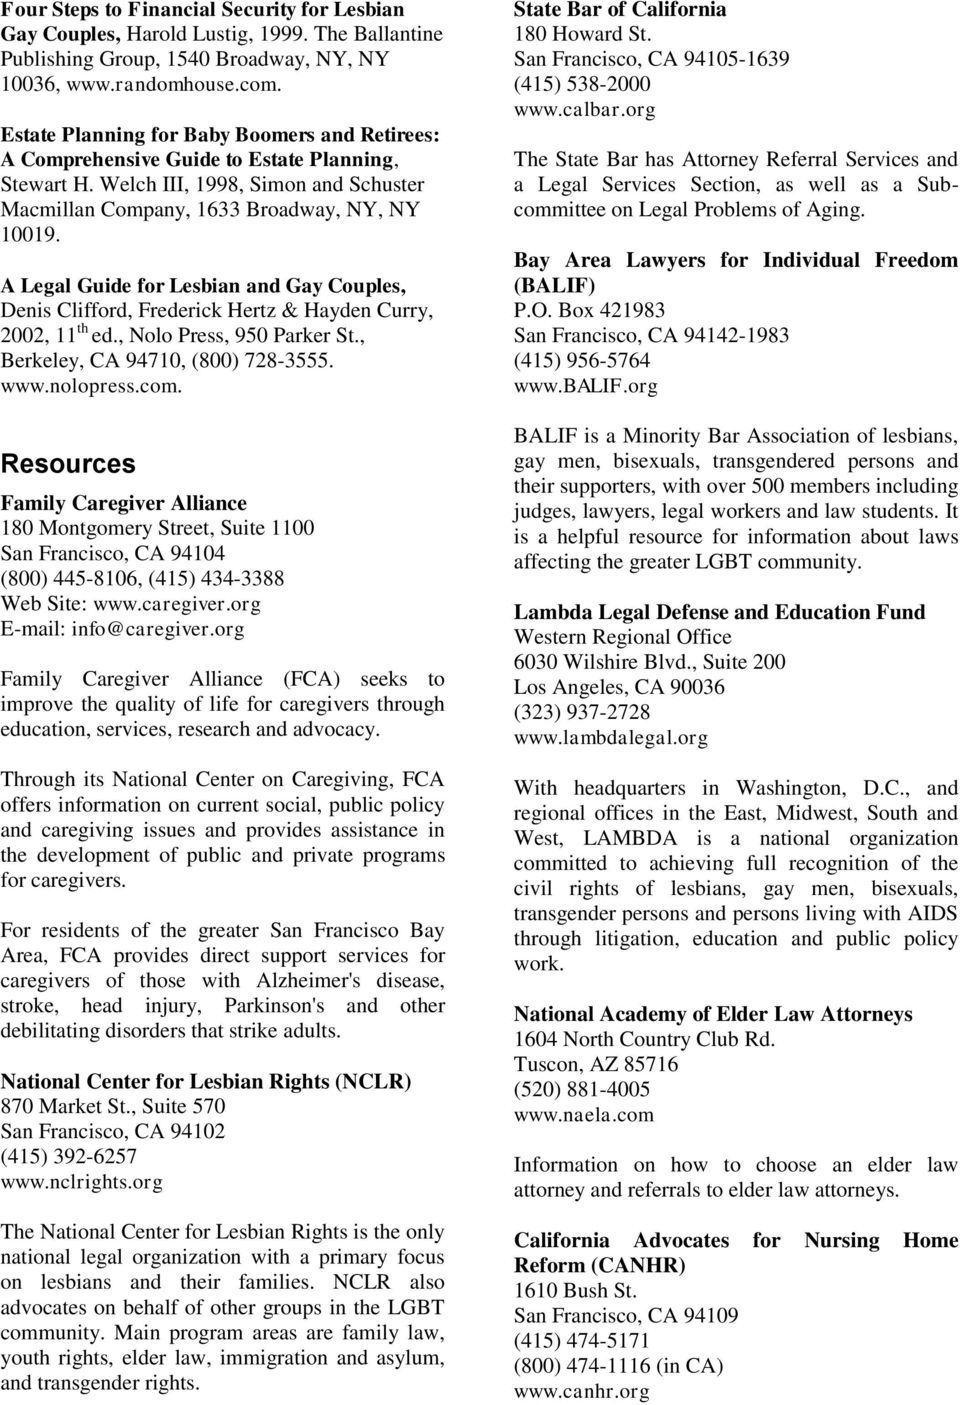 A Legal Guide for Lesbian and Gay Couples, Denis Clifford, Frederick Hertz & Hayden Curry, 2002, 11 th ed., Nolo Press, 950 Parker St., Berkeley, CA 94710, (800) 728-3555. www.nolopress.com.